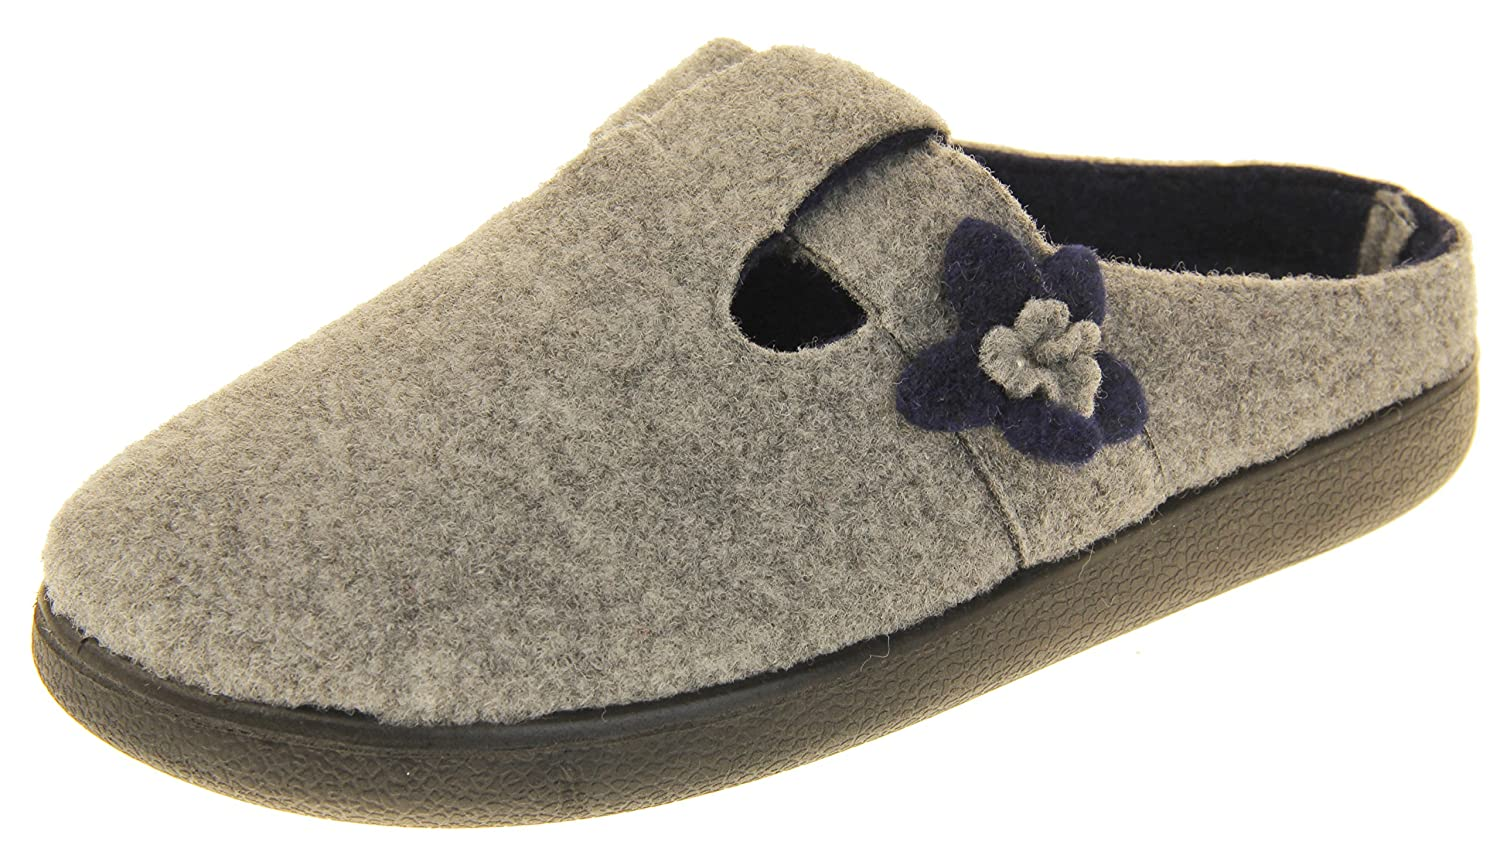 Coolers Womens Grey T-bar /& Navy Flower Felt Mules Slippers 8 B M US